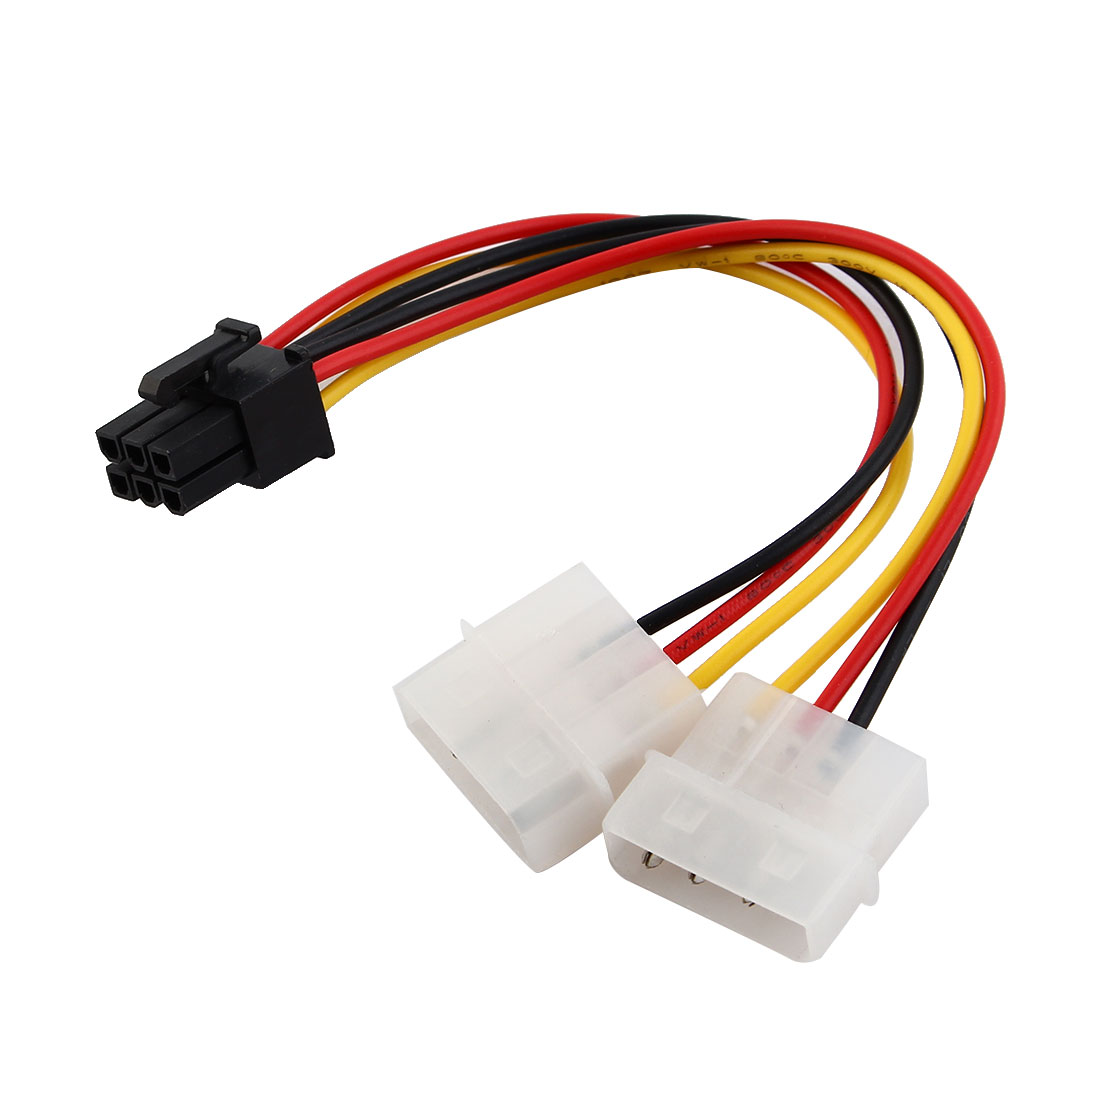 6 Pin PCI Express to Two 4 Pin Power Adapter Cable